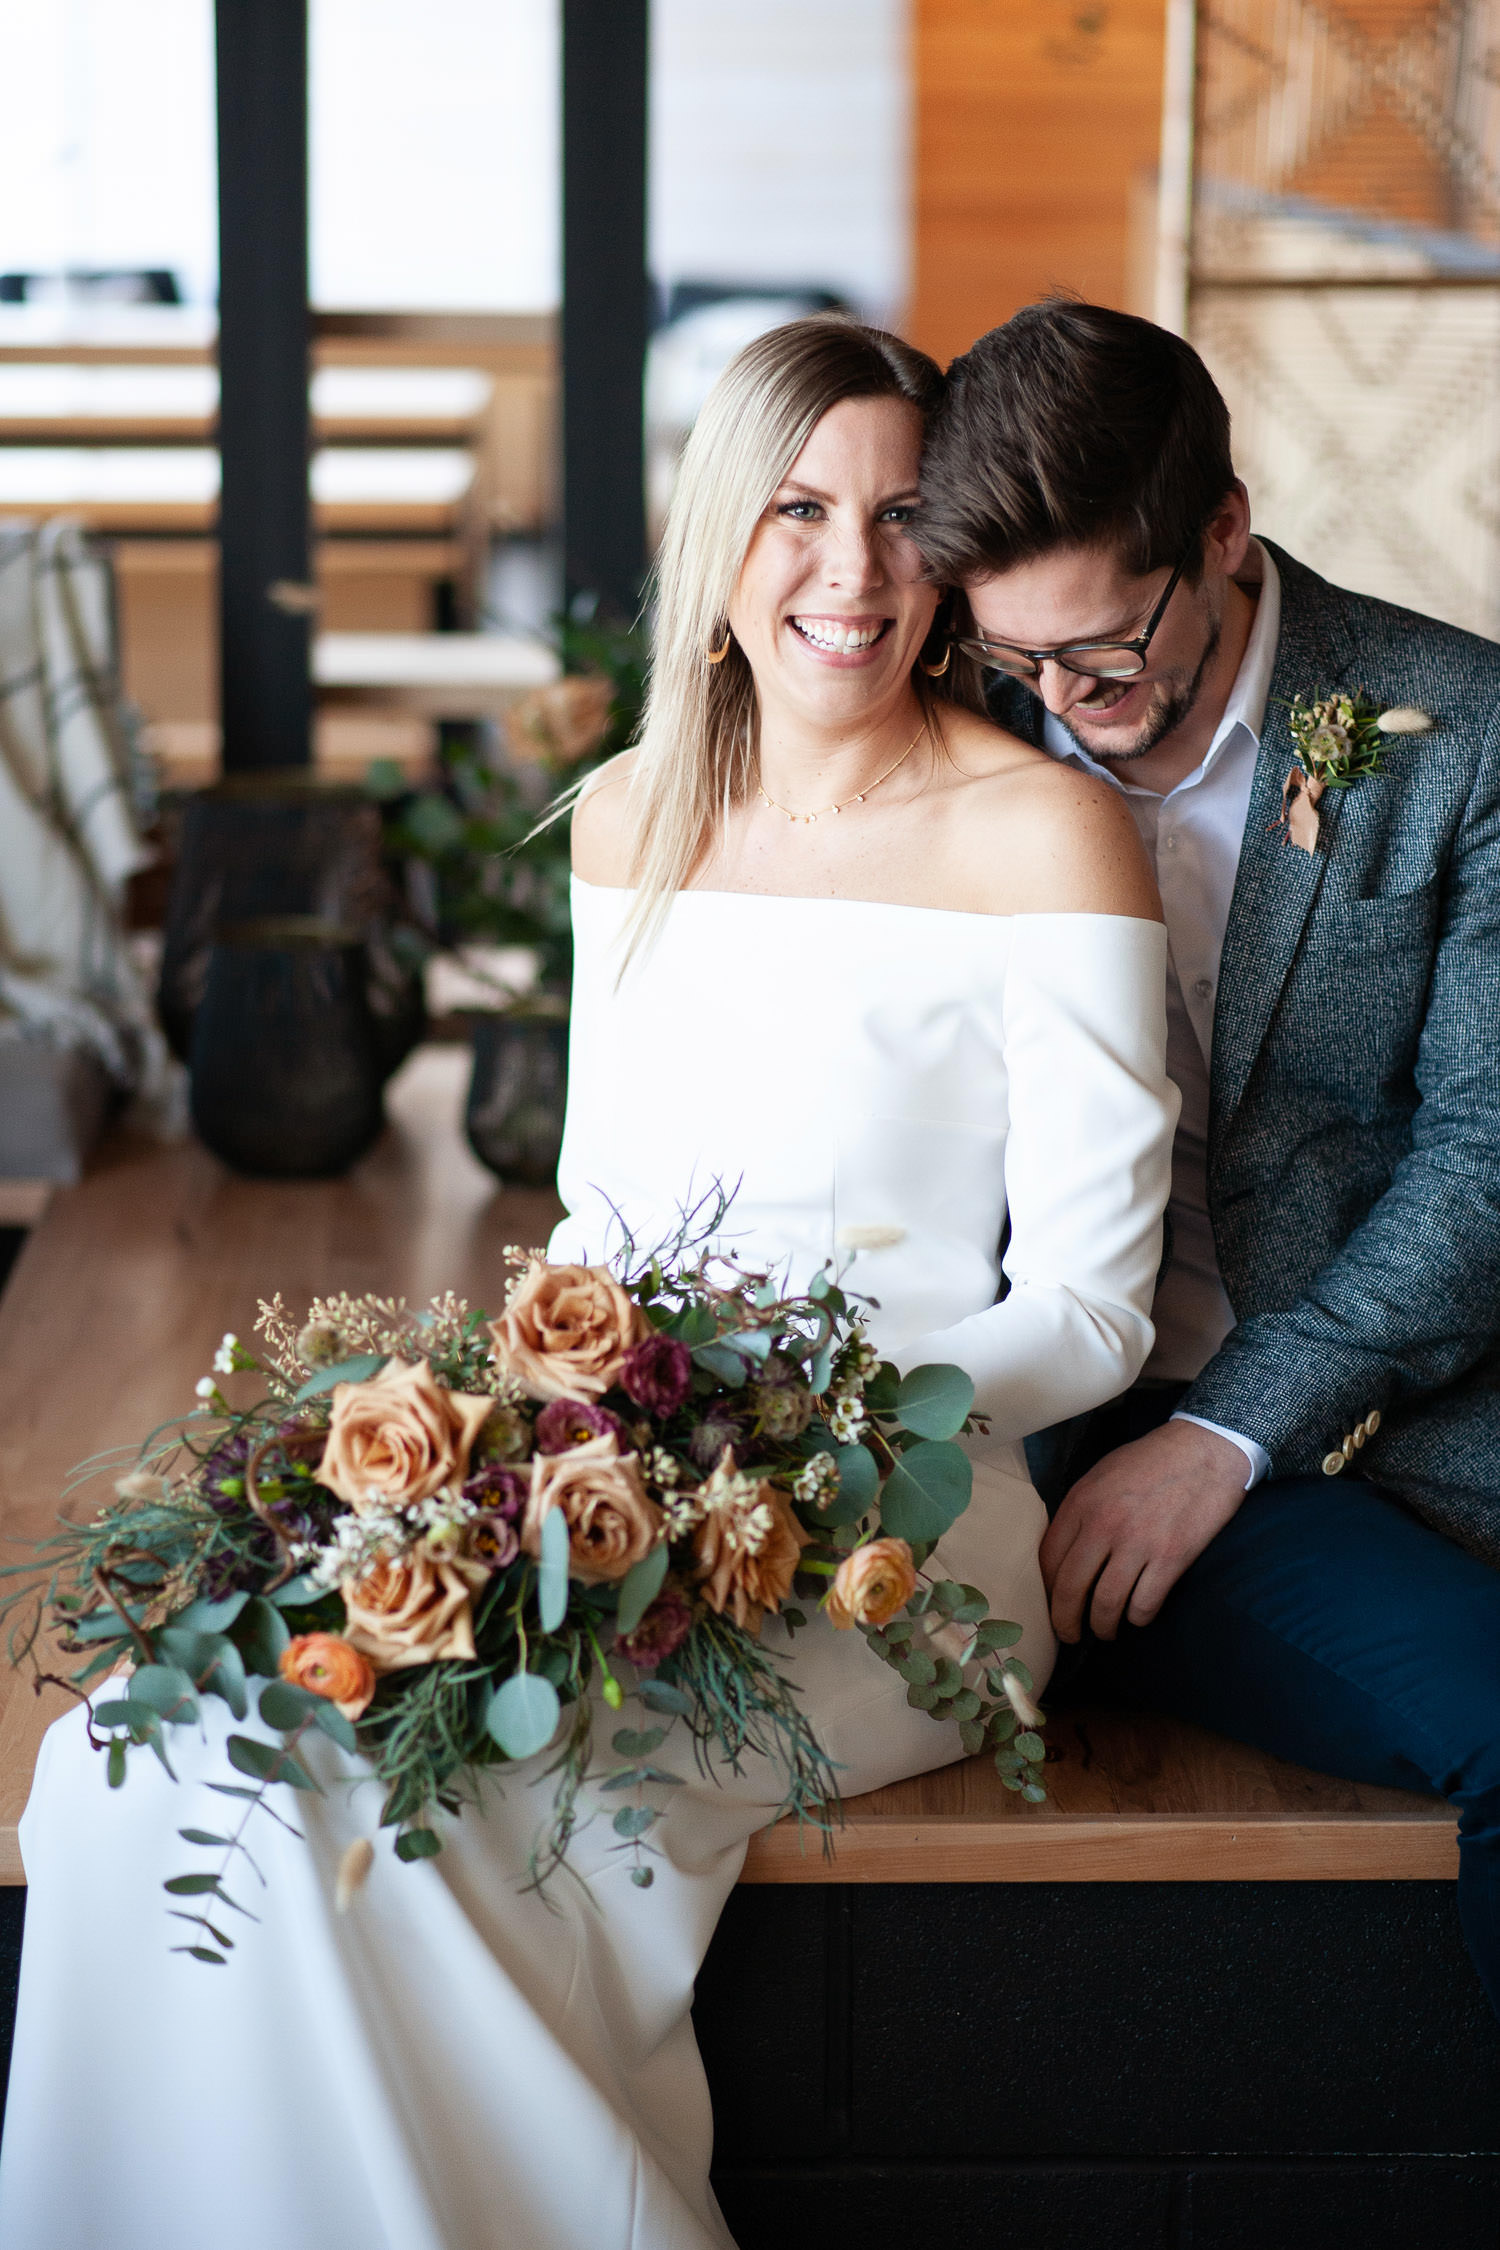 Bride and groom at Annex Ale Project Calgary intimate weddings and elopements captured by Tara Whittaker Photography